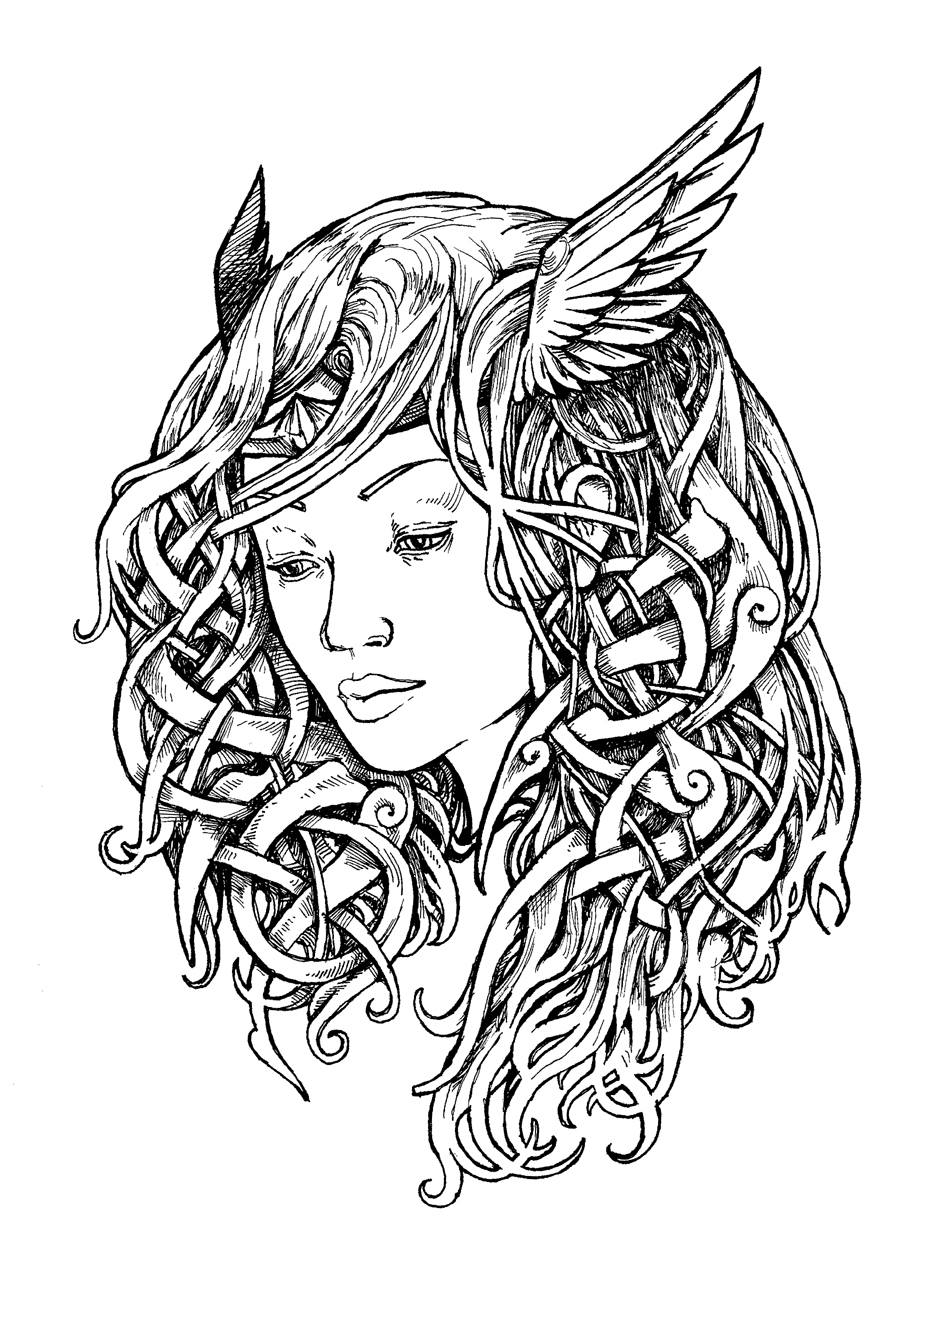 Drawn amour odin More Pinteres… drawing ink tattoo